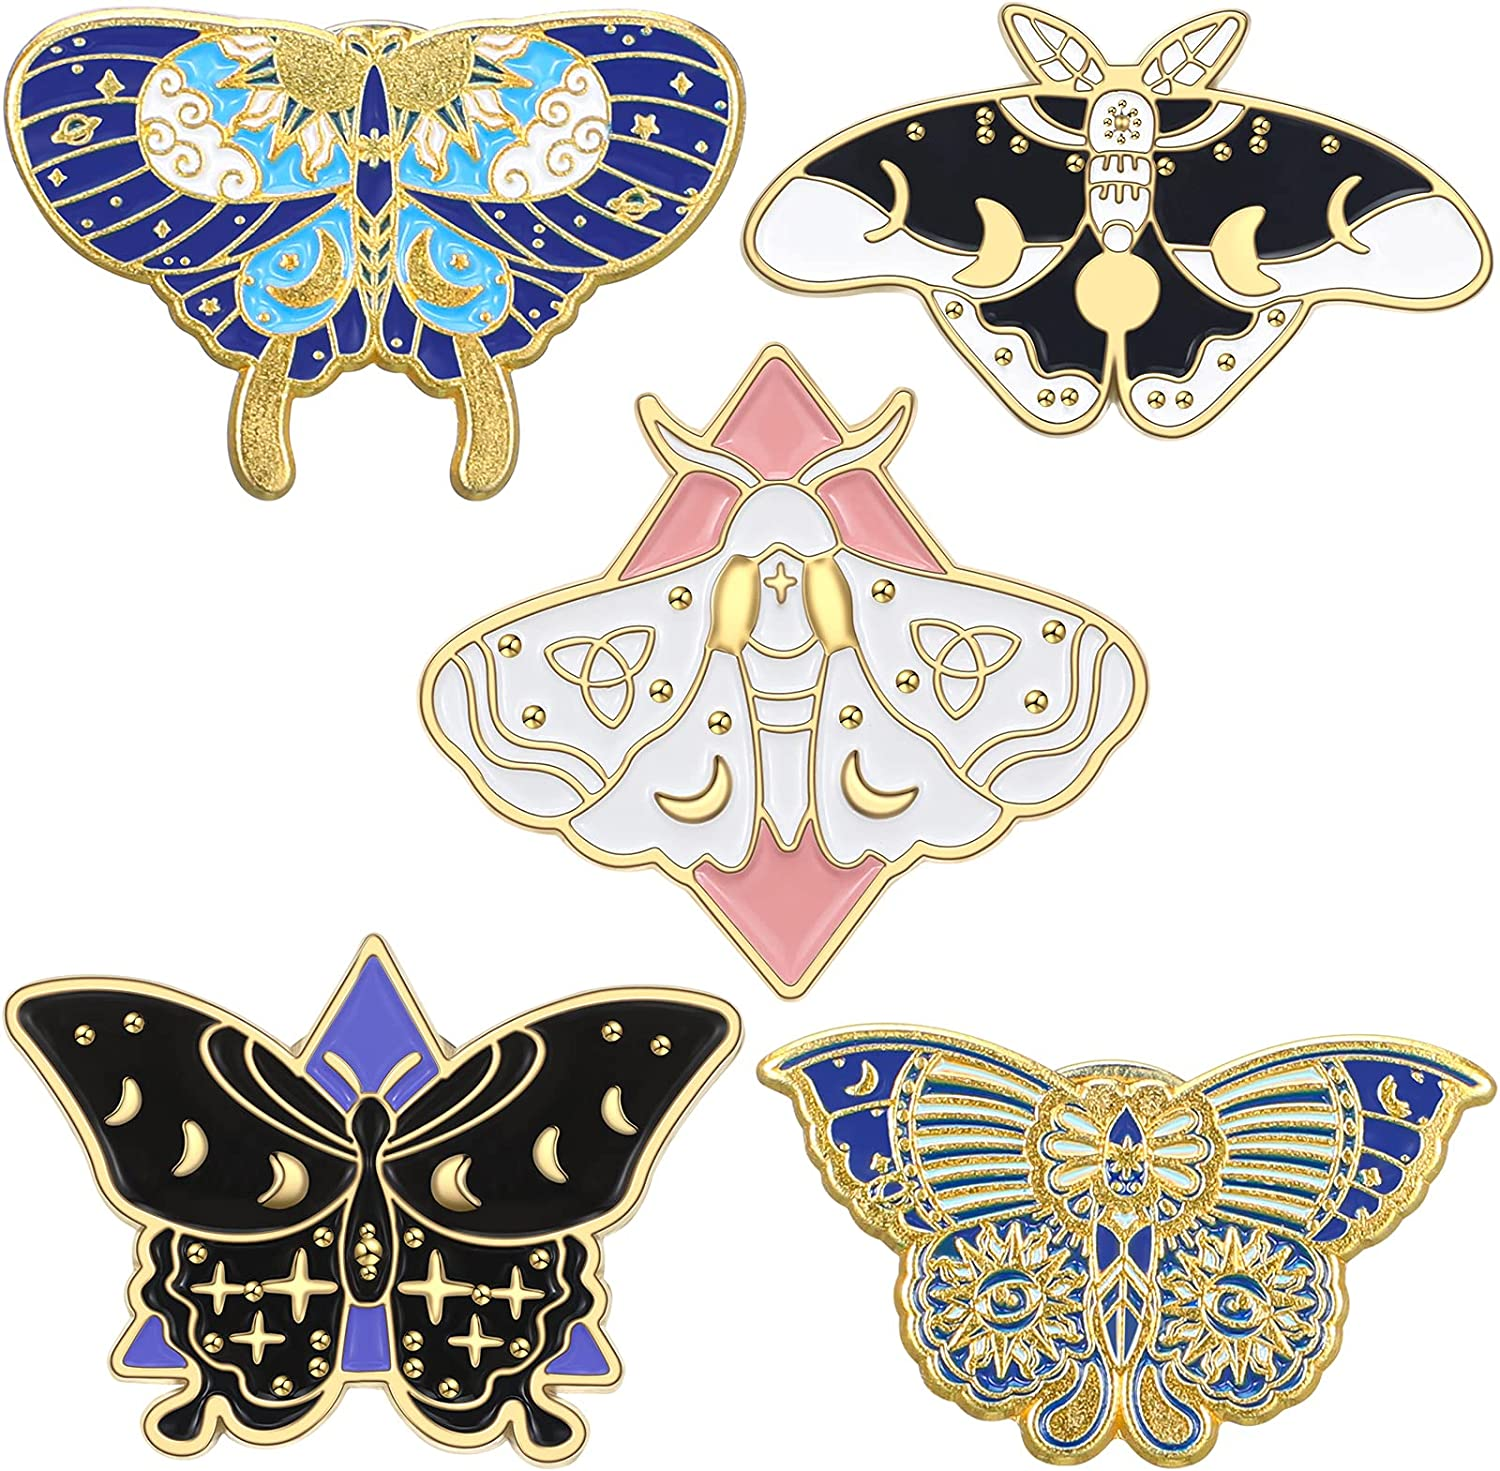 5 Pieces Butterfly Enamel Pins Set Colorful Lapel Pins Cool Moth Brooch Pin Backpacks Steampunk Badge Jewelry for Women Girls